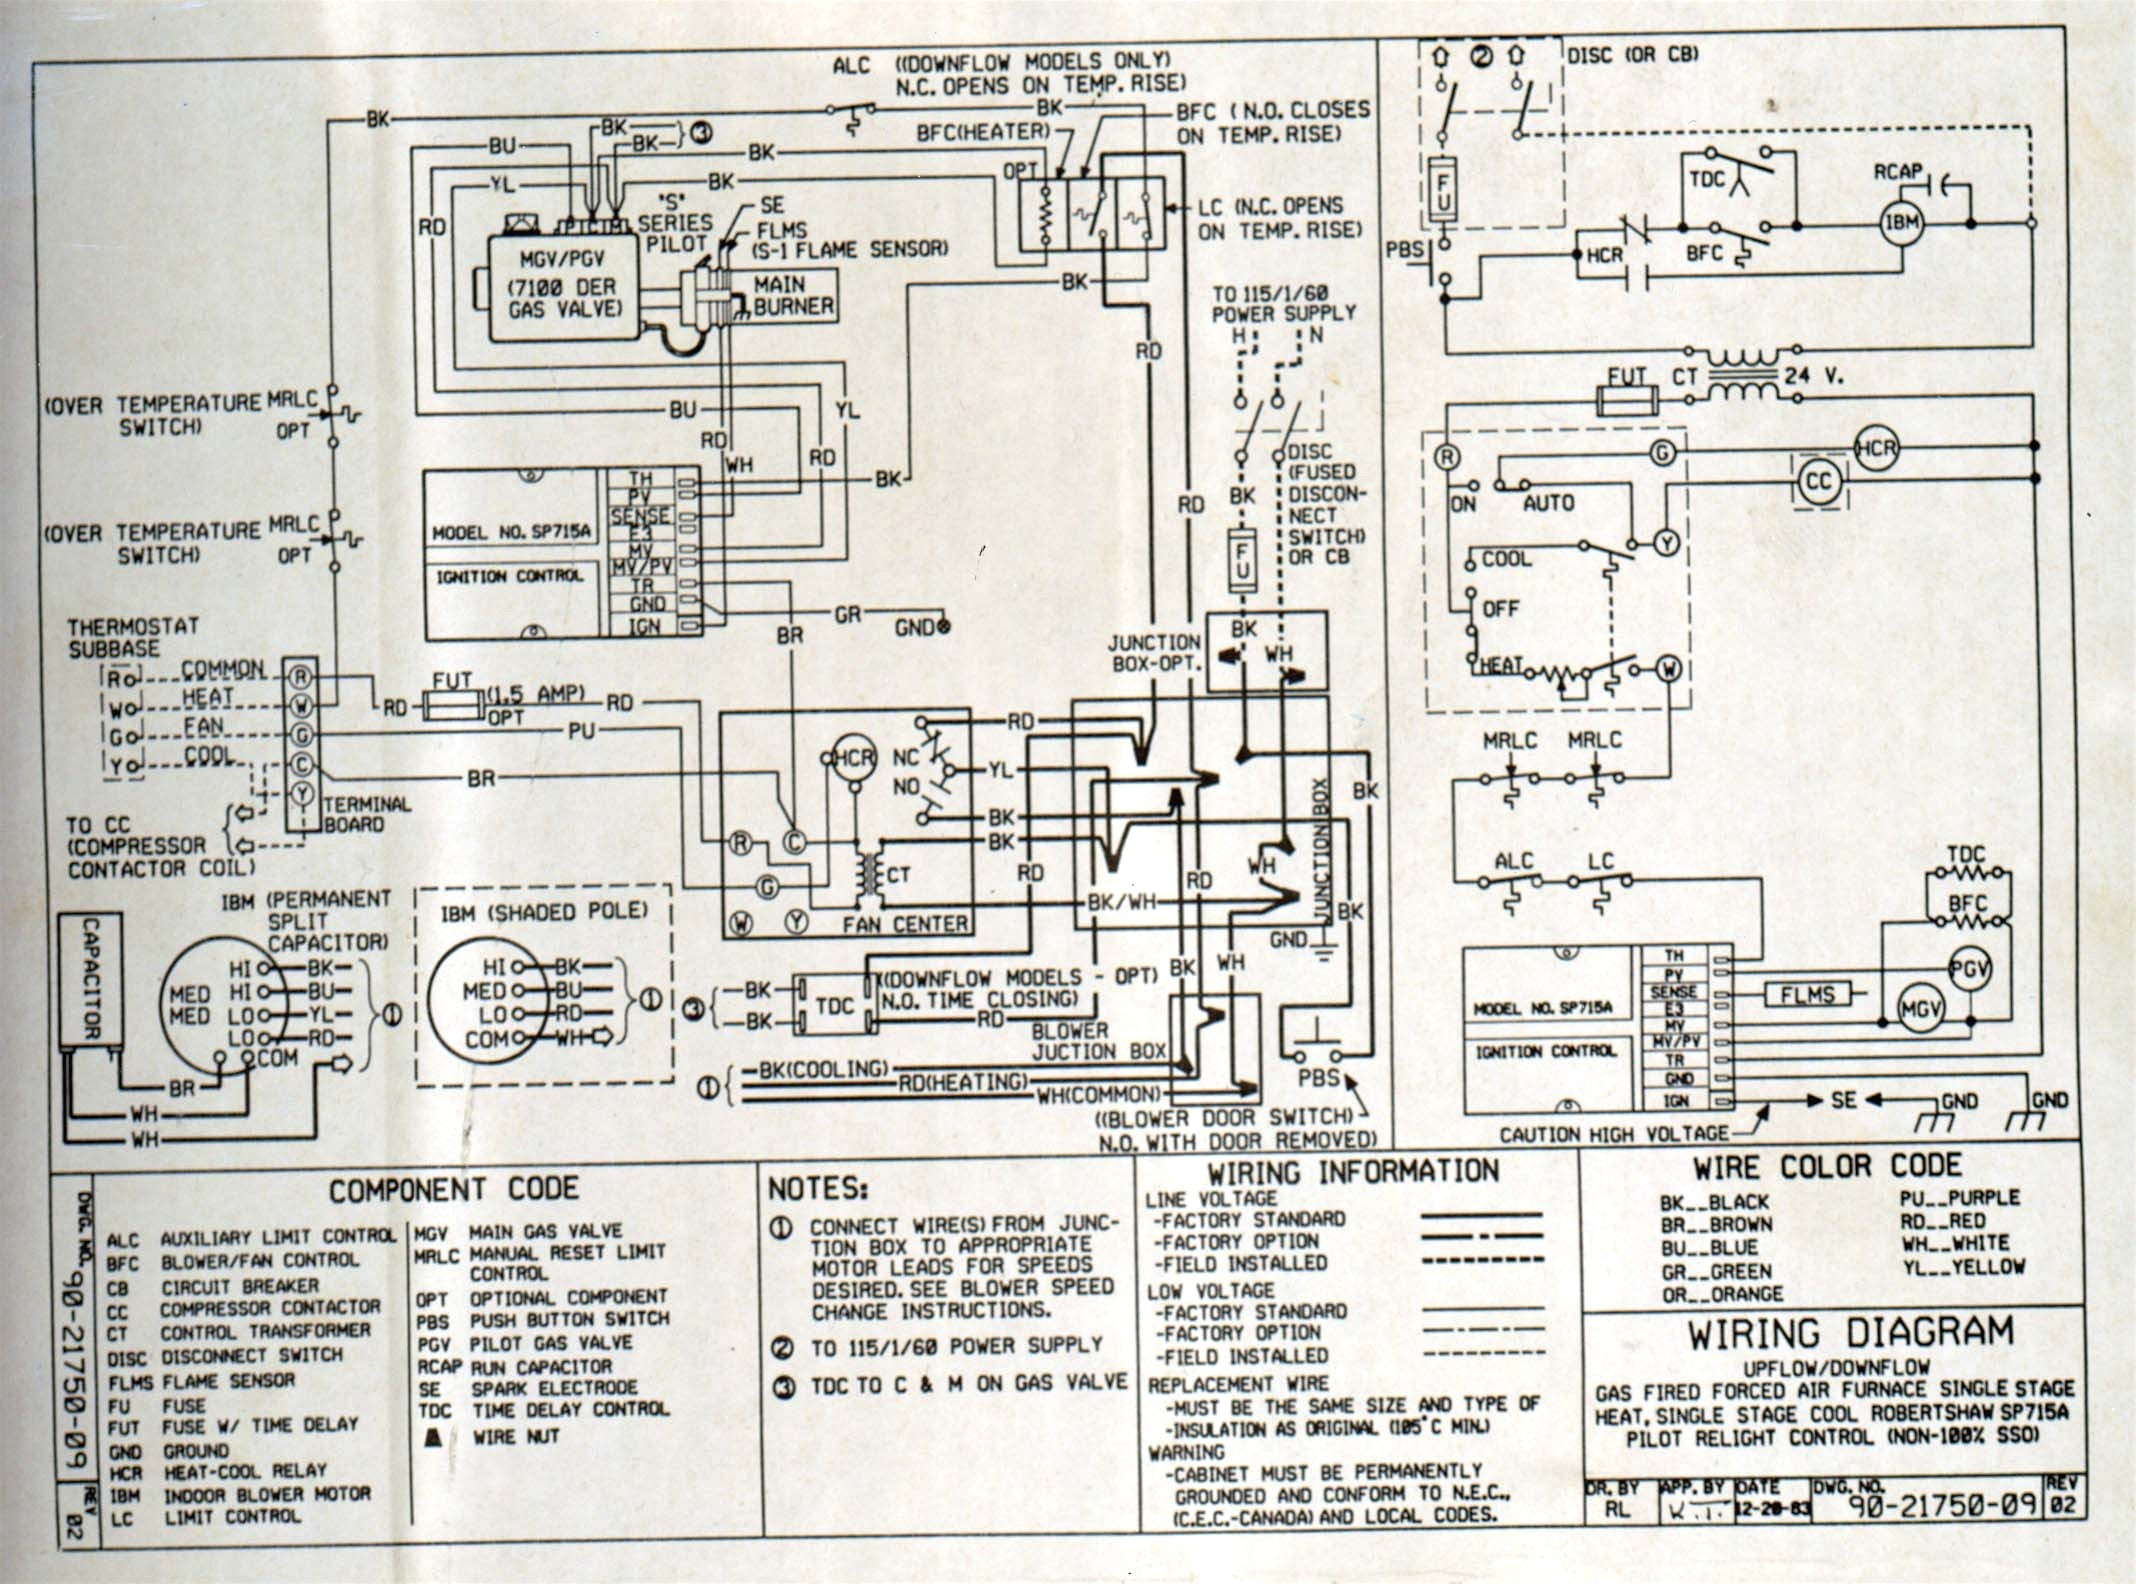 electric heat furnace wiring diagram Collection-Dayton Baseboard Heater Wiring Diagram Valid New Payne Electric Furnace Wiring Diagram 20-t